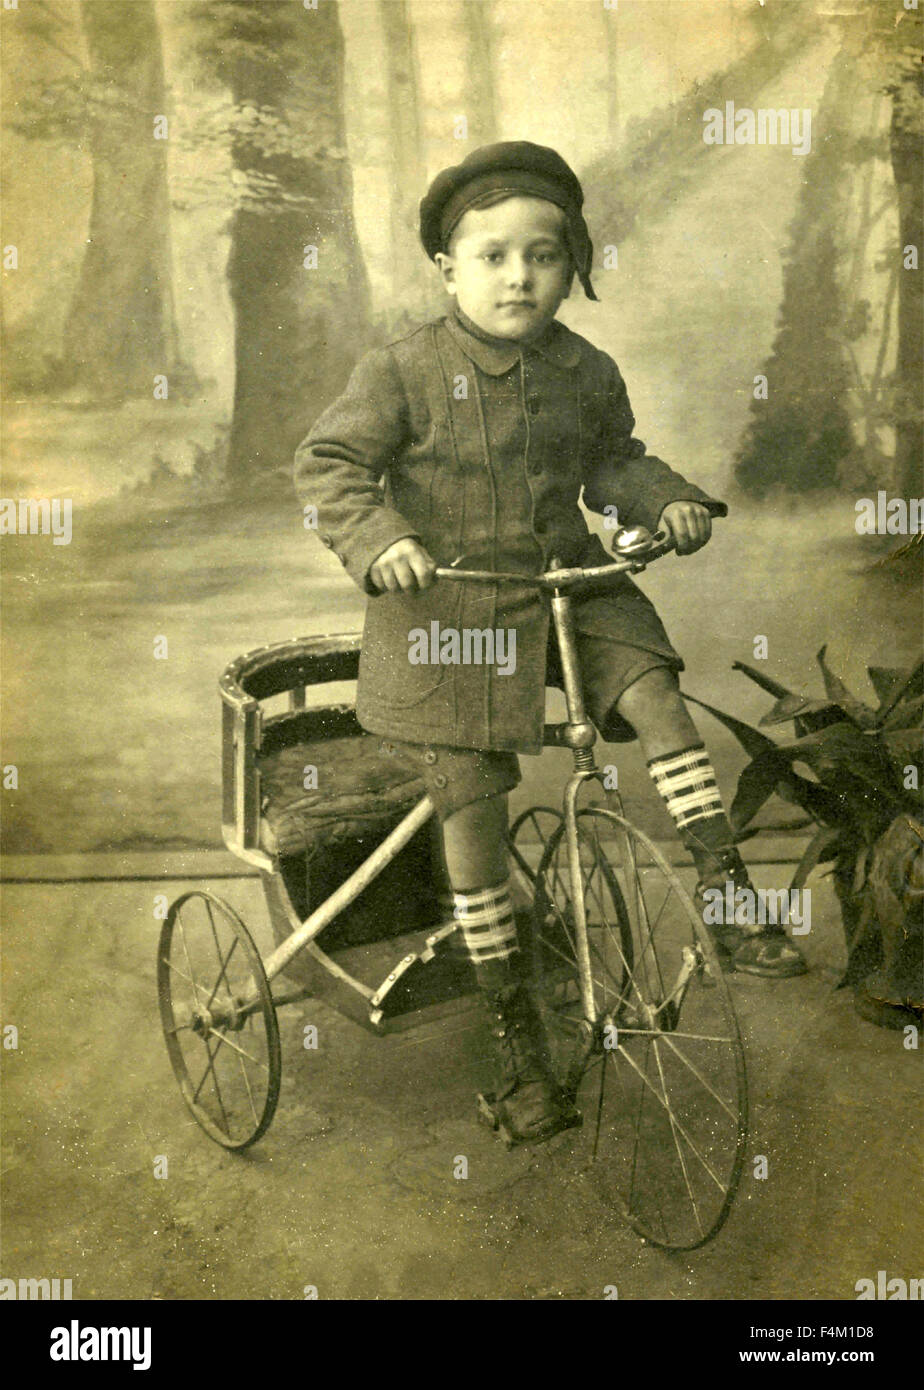 Child on tricycle, Italy - Stock Image